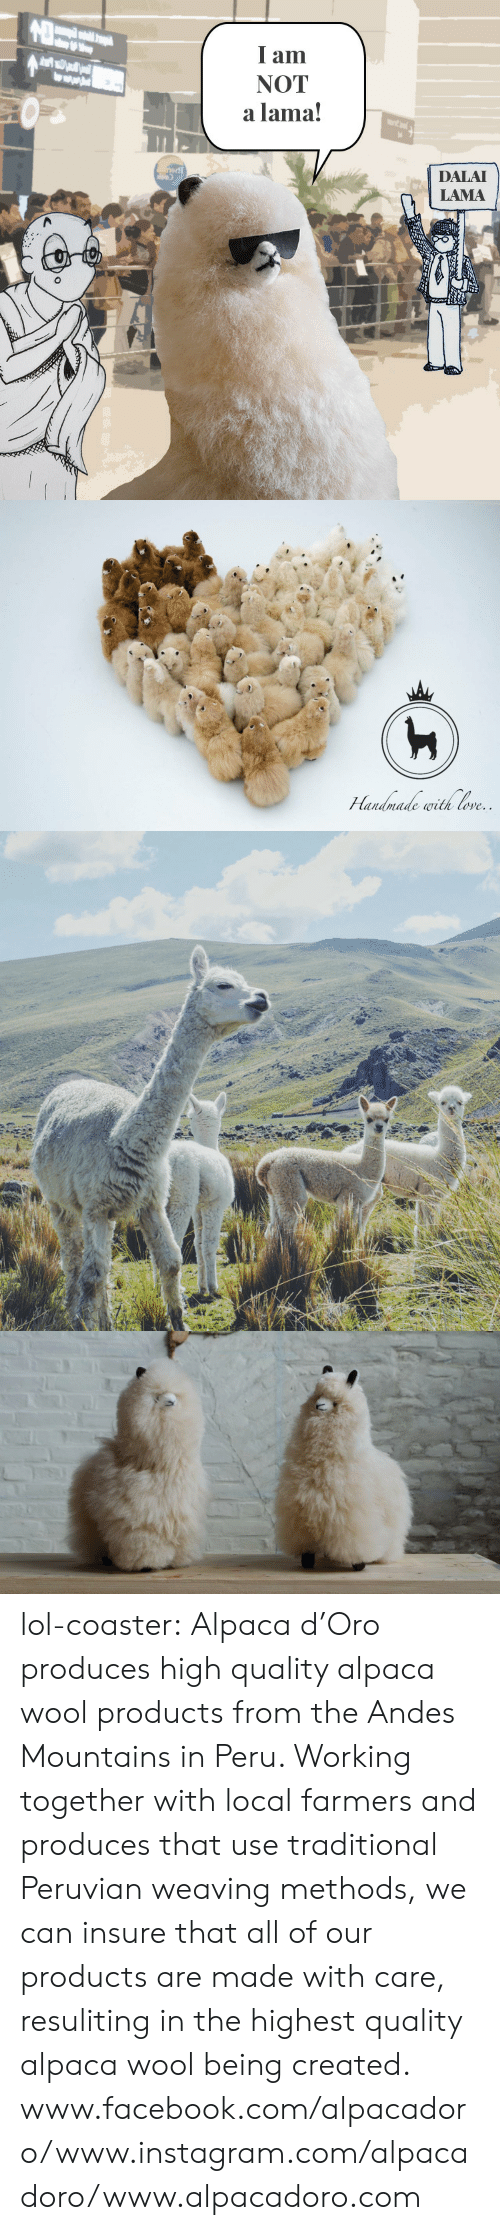 Ored: I am  NOT  a lama!  DALAI  LAMA   ore lol-coaster:  Alpaca d'Oro produces high quality alpaca wool products from the Andes Mountains in Peru. Working together with local farmers and produces that use traditional Peruvian weaving methods, we can insure that all of our products are made with care, resuliting in the highest quality alpaca wool being created.   www.facebook.com/alpacadoro/www.instagram.com/alpacadoro/www.alpacadoro.com